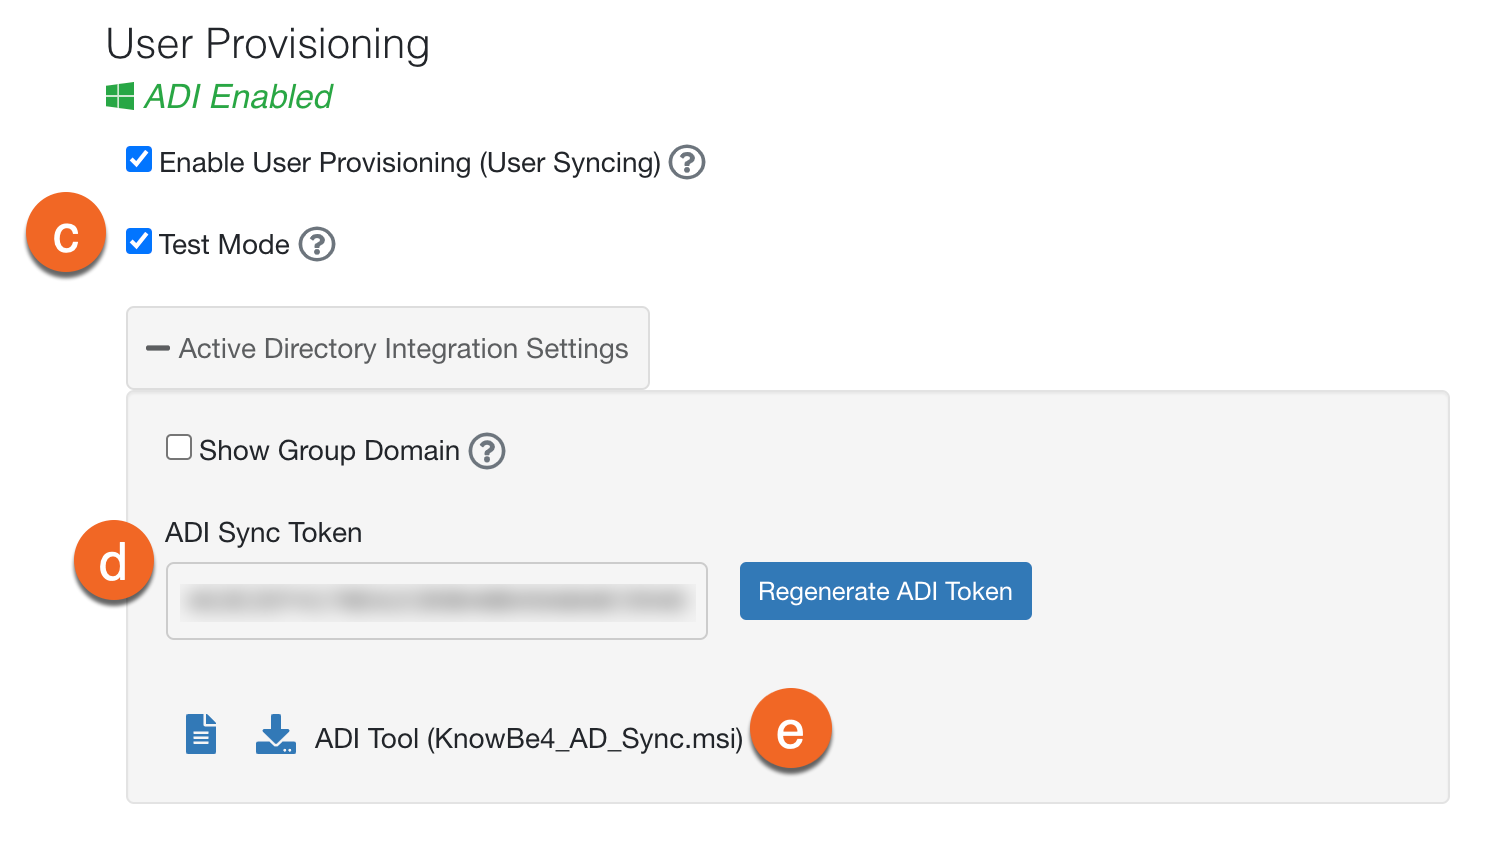 Account Settings area, showing the following: Test Mode, ADI Sync Token, and ADI Tool.